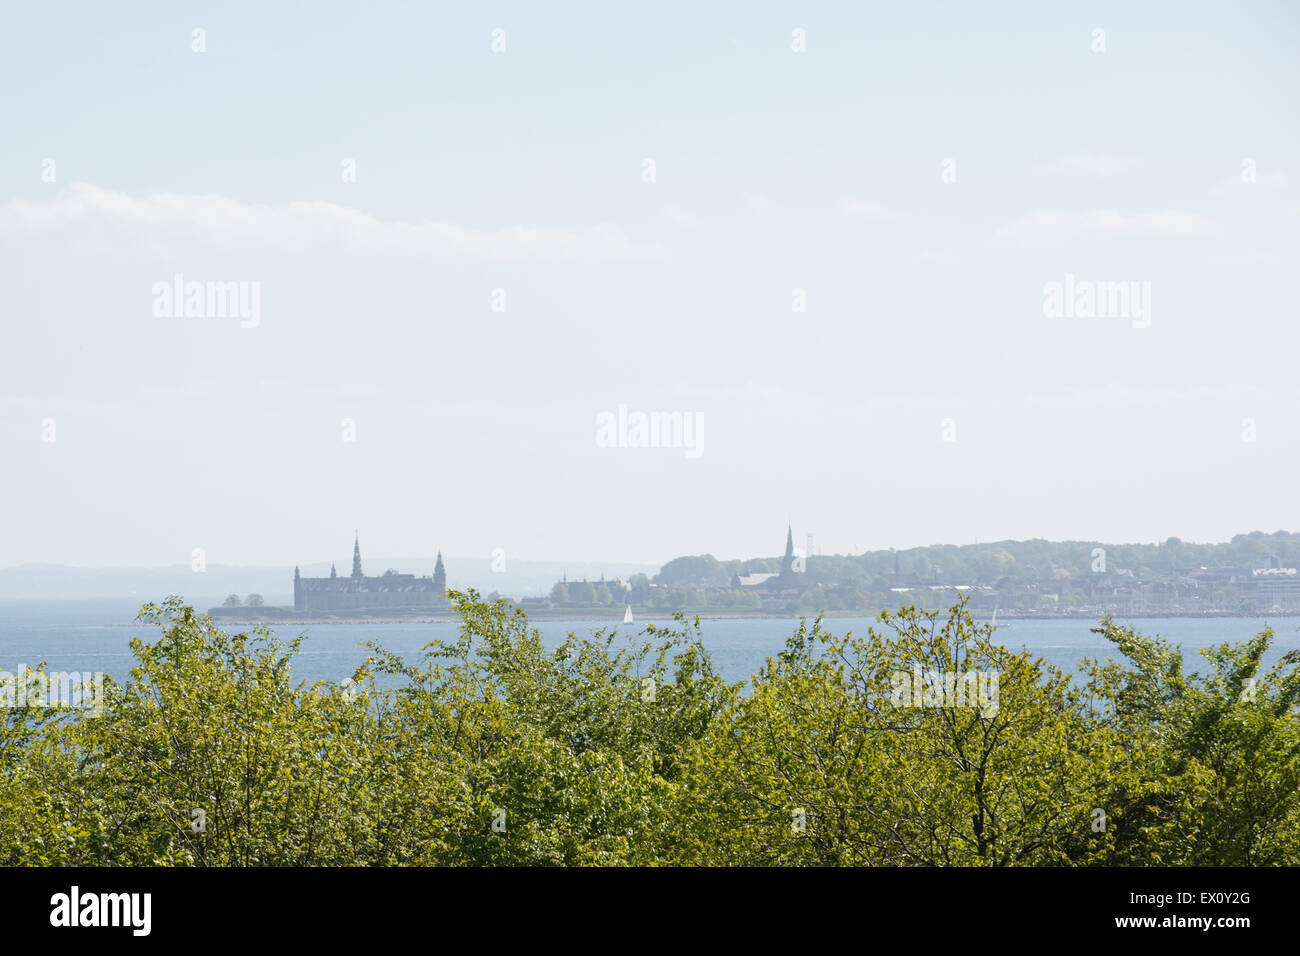 Landscape with the baltic sea and Kronborg castle as seen from Sweden - Stock Image